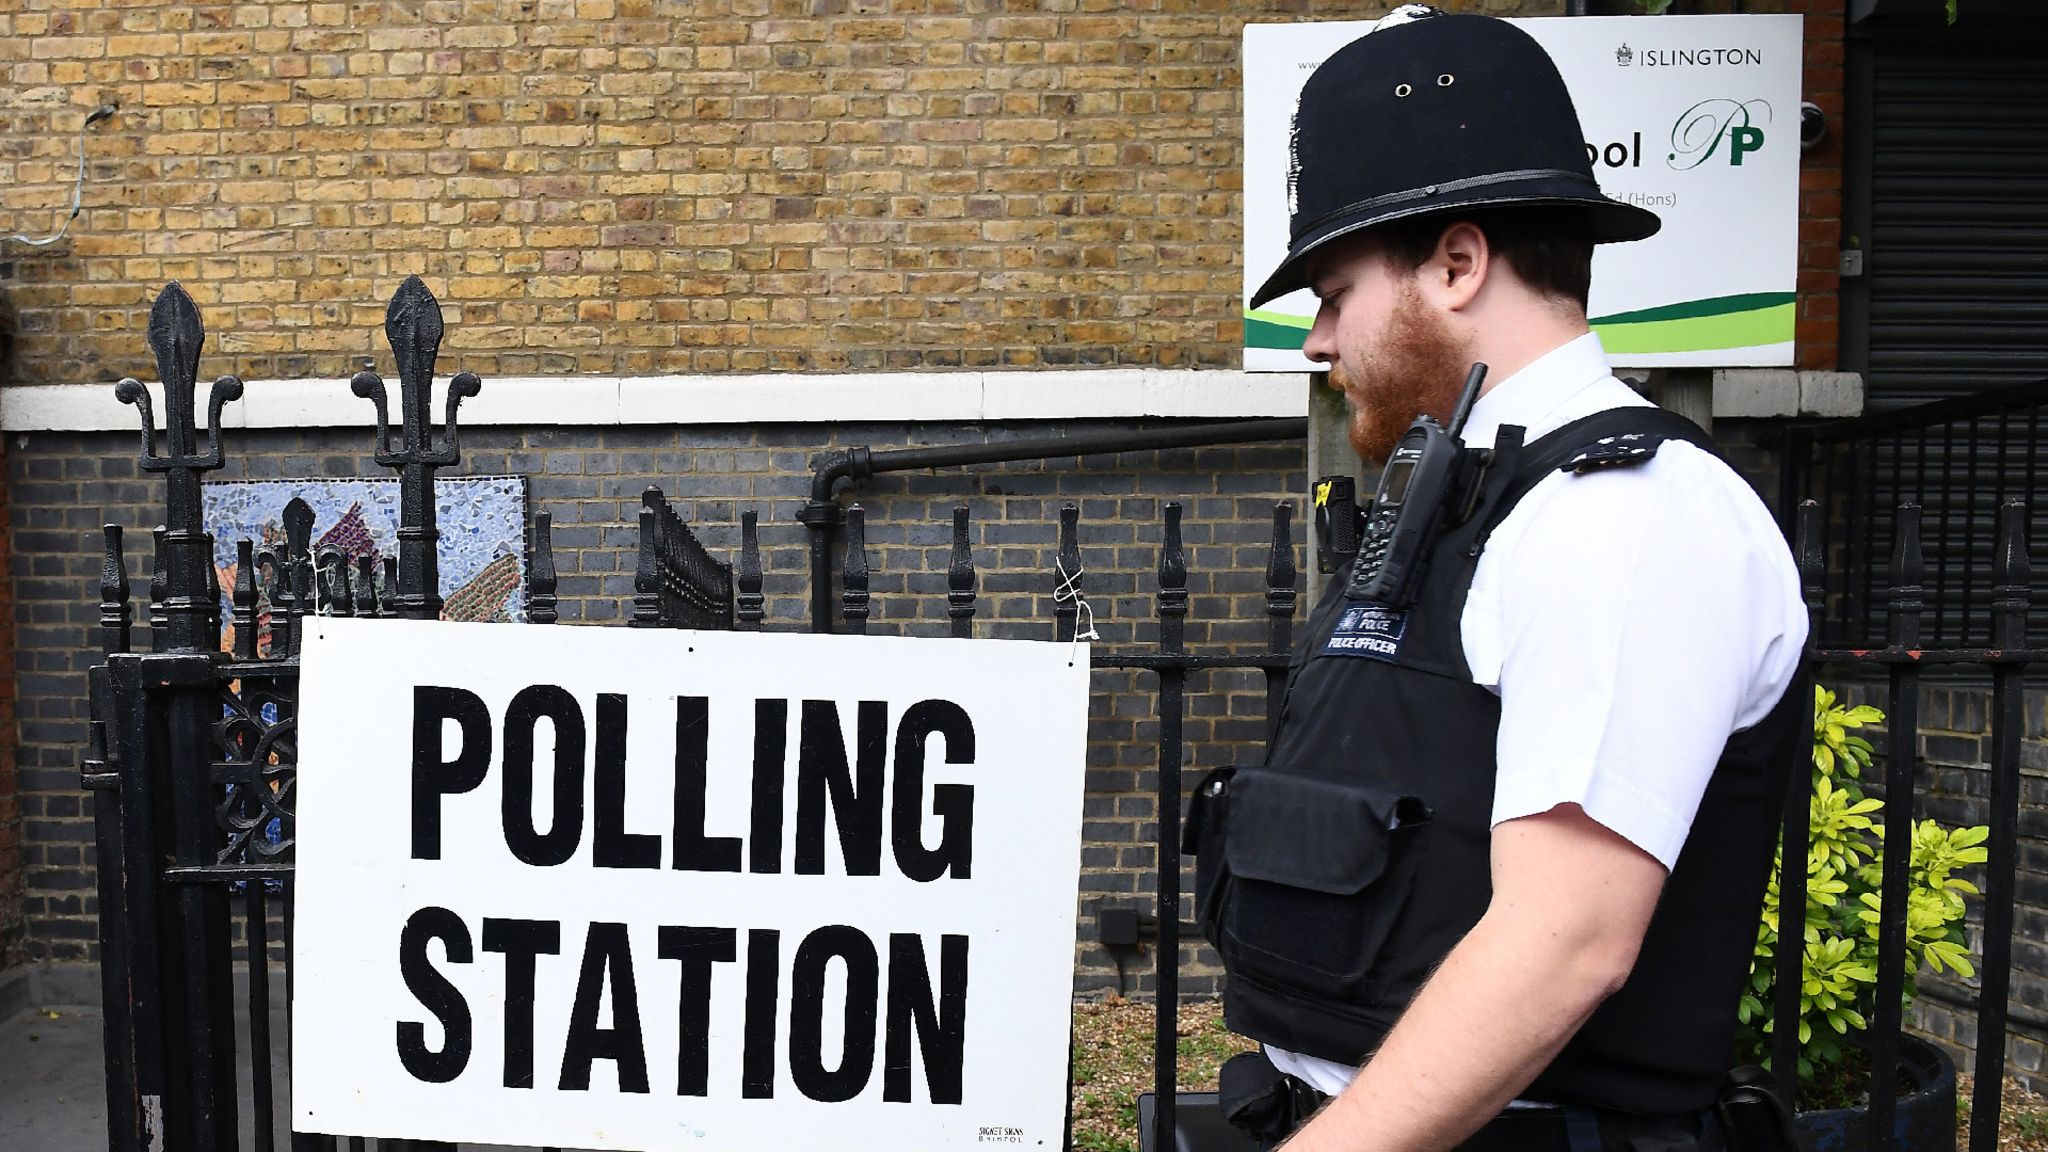 Police officer at a polling station